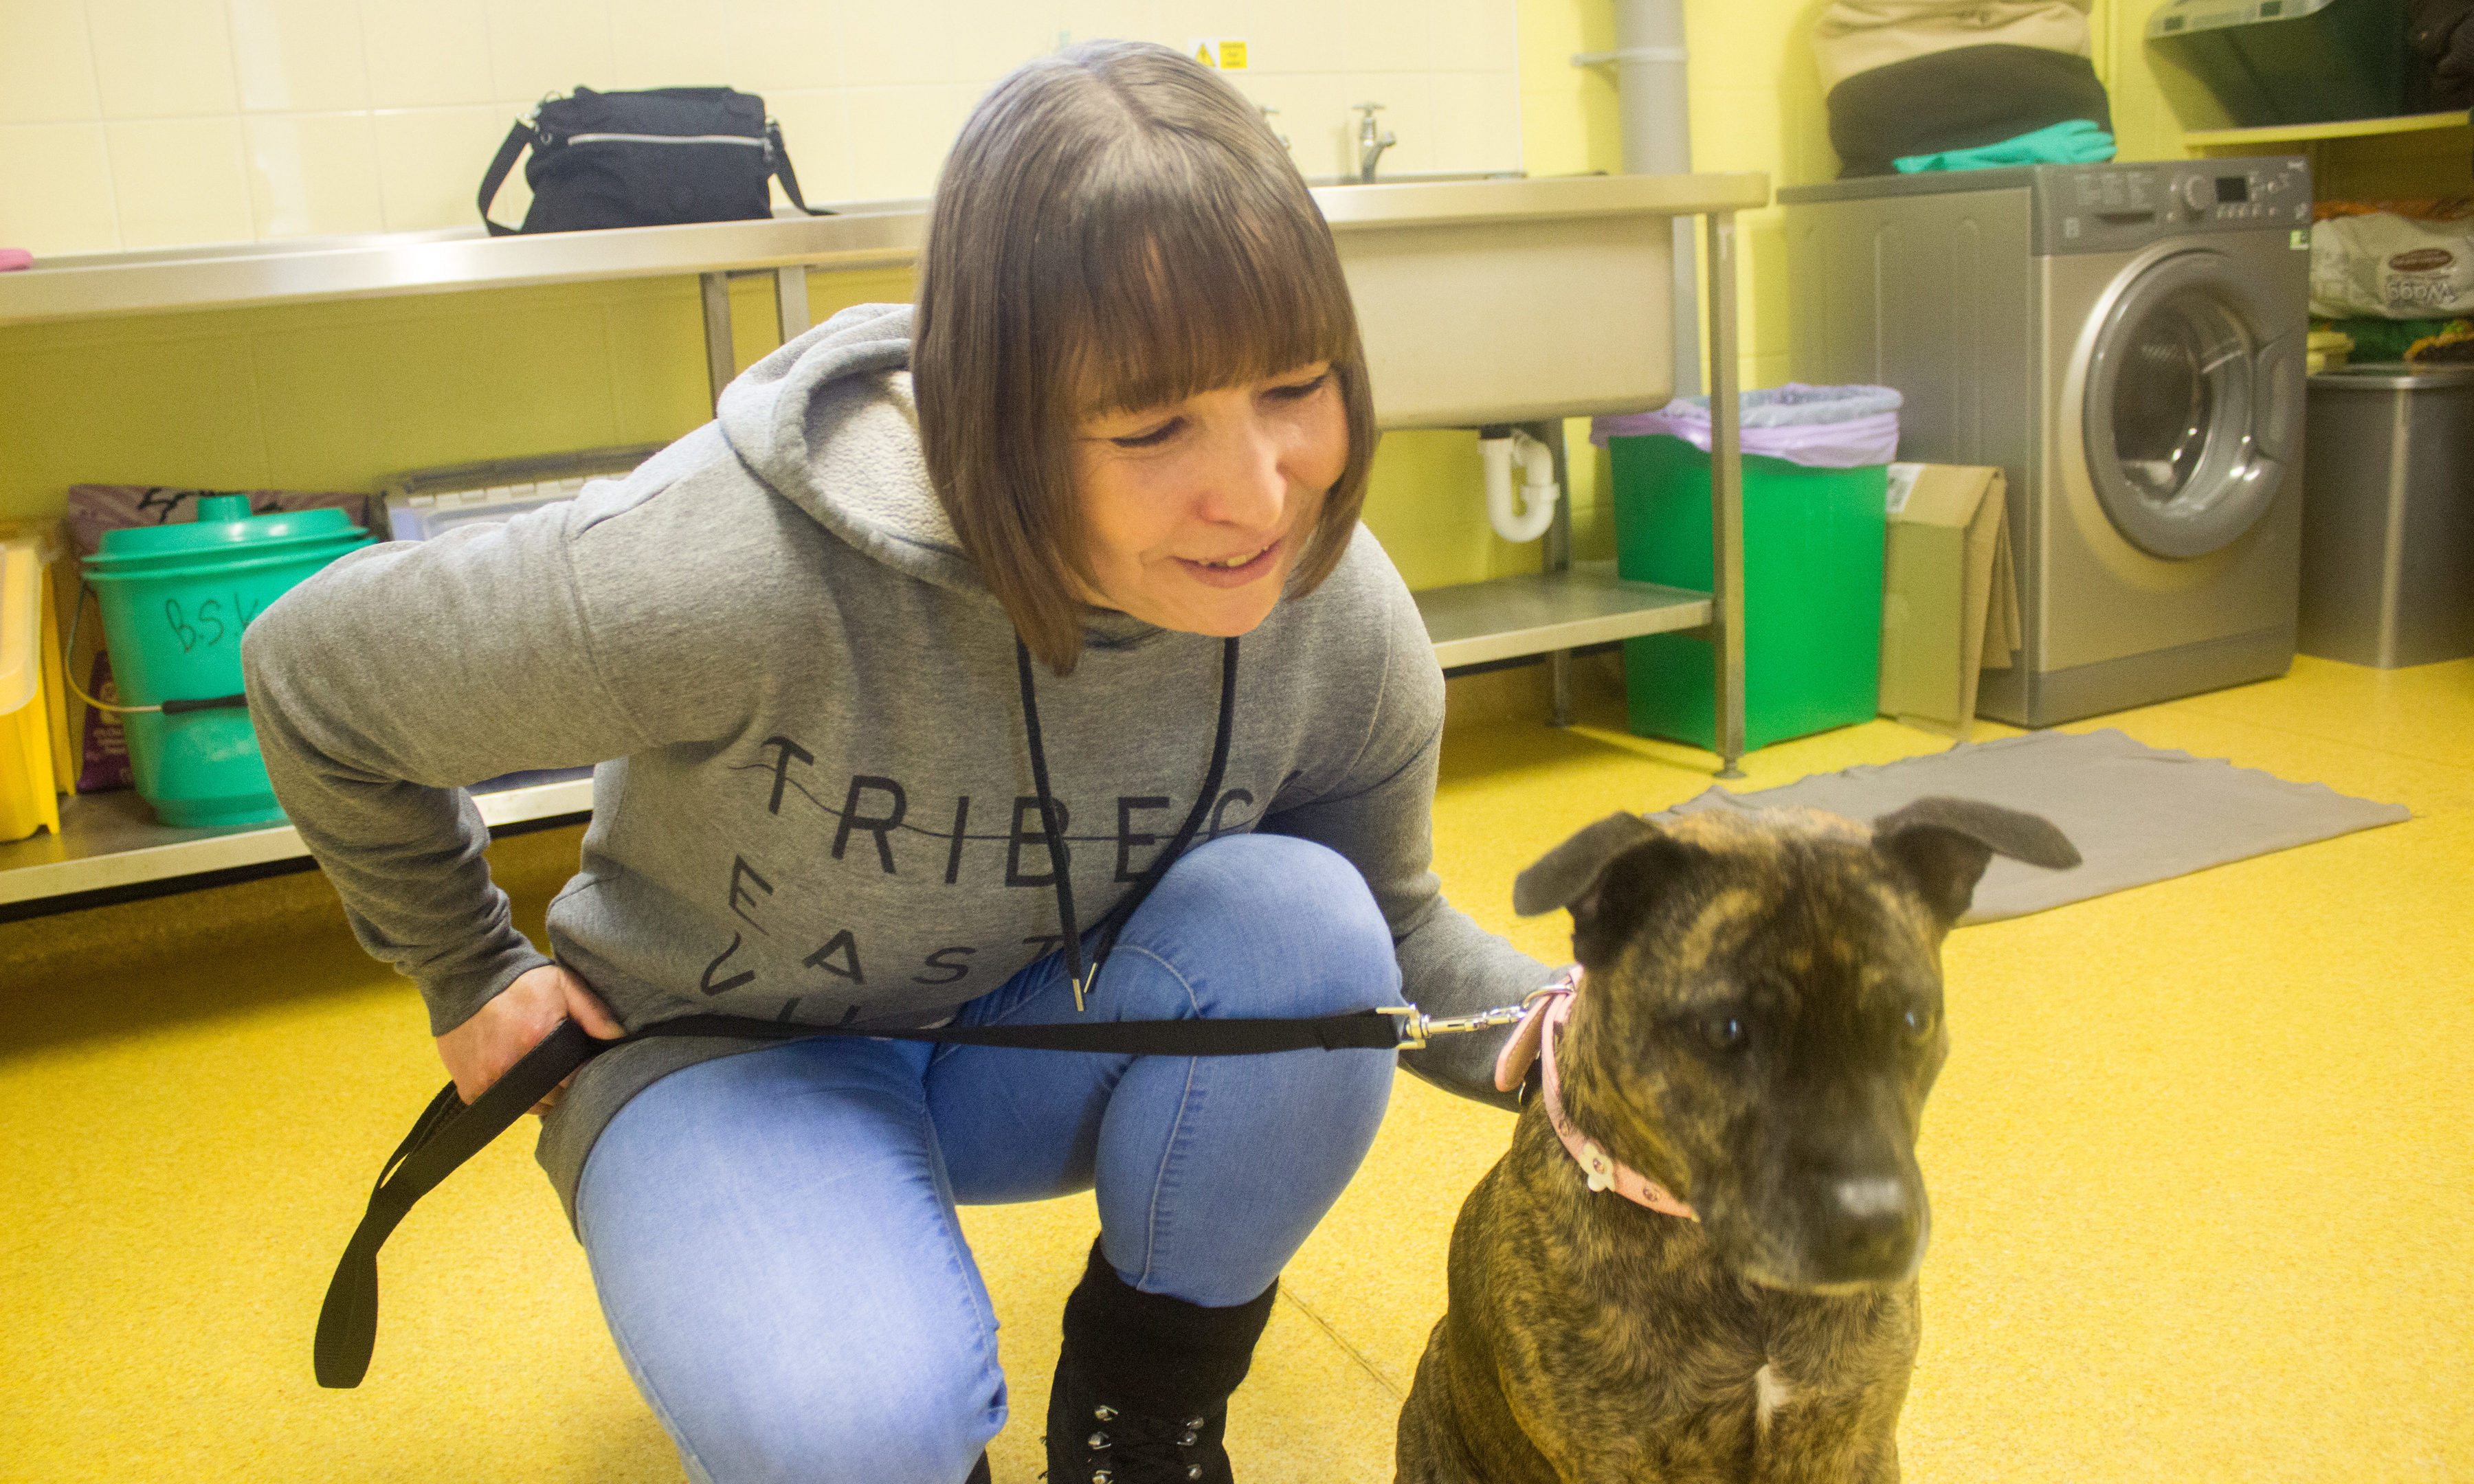 Heather with her dog Rio, who she took home from the kennels.